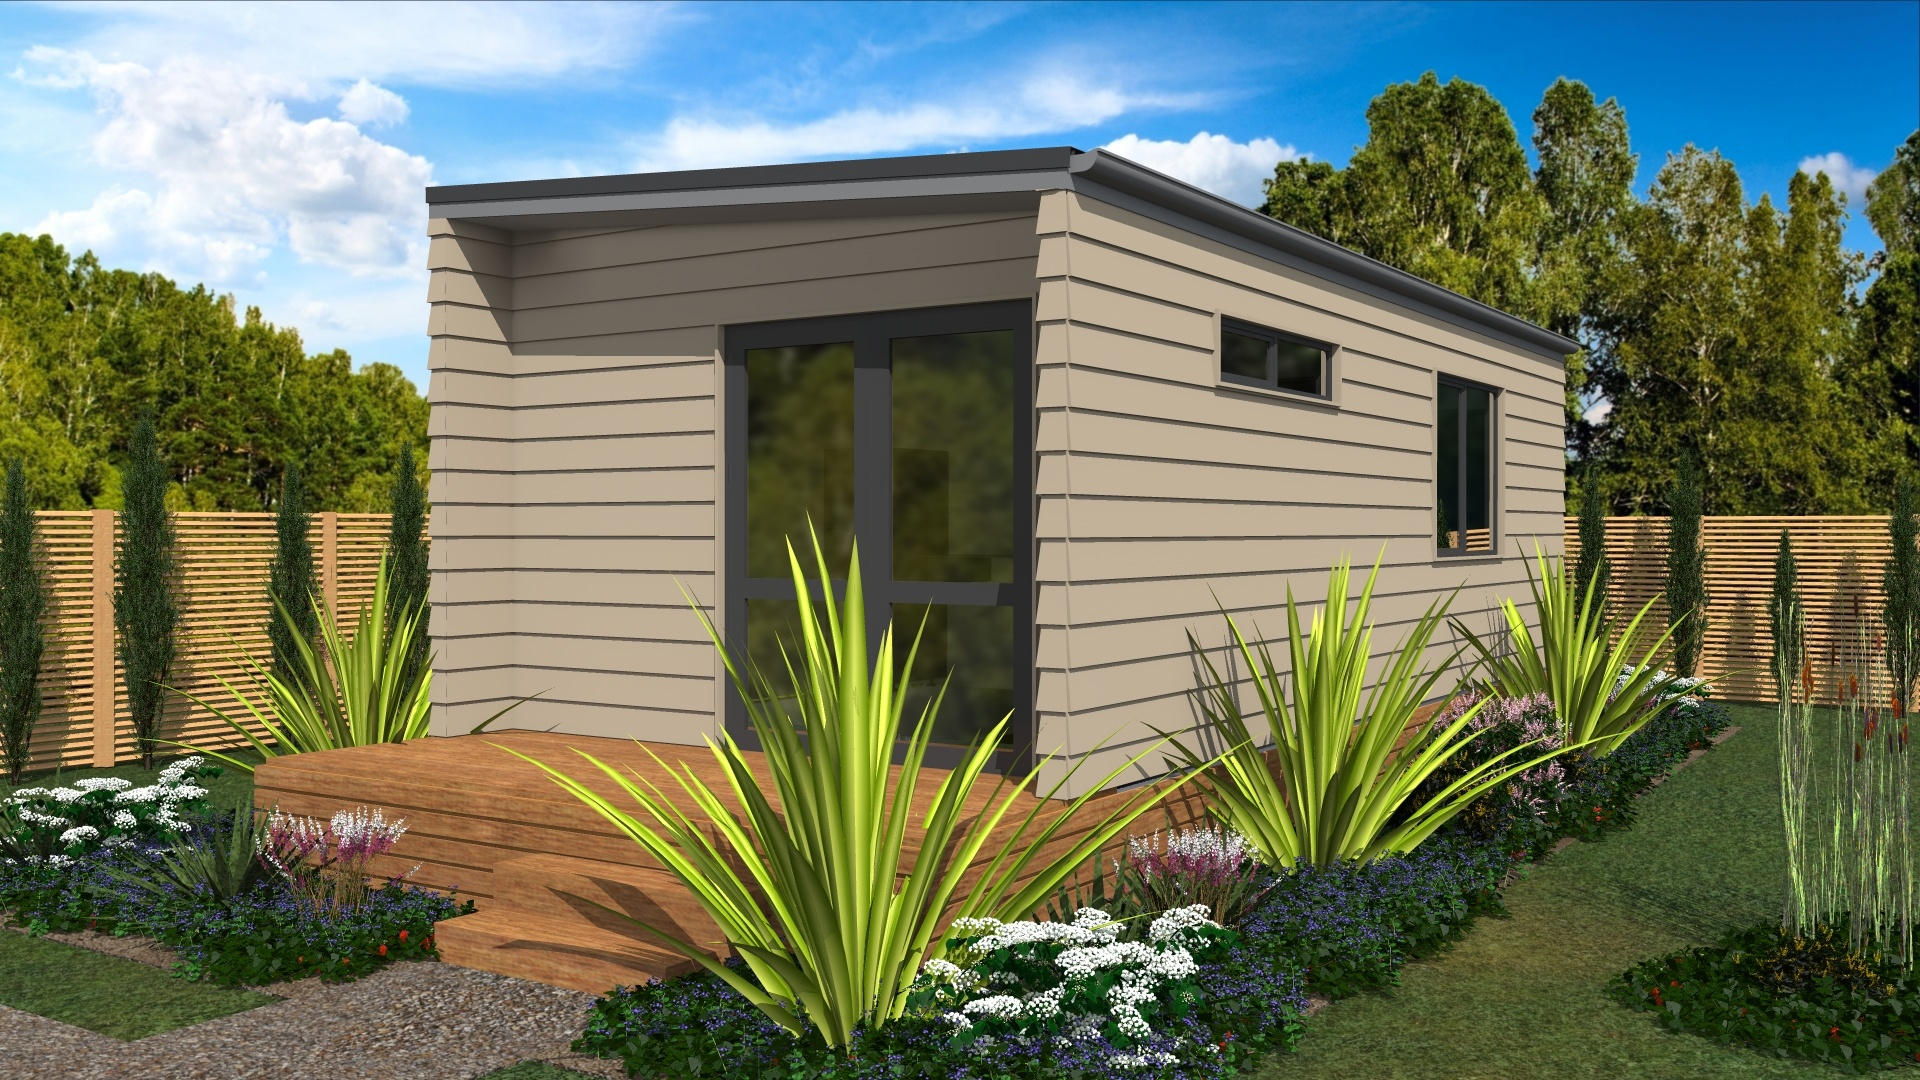 Kiwi 1 bedroom prefabricated